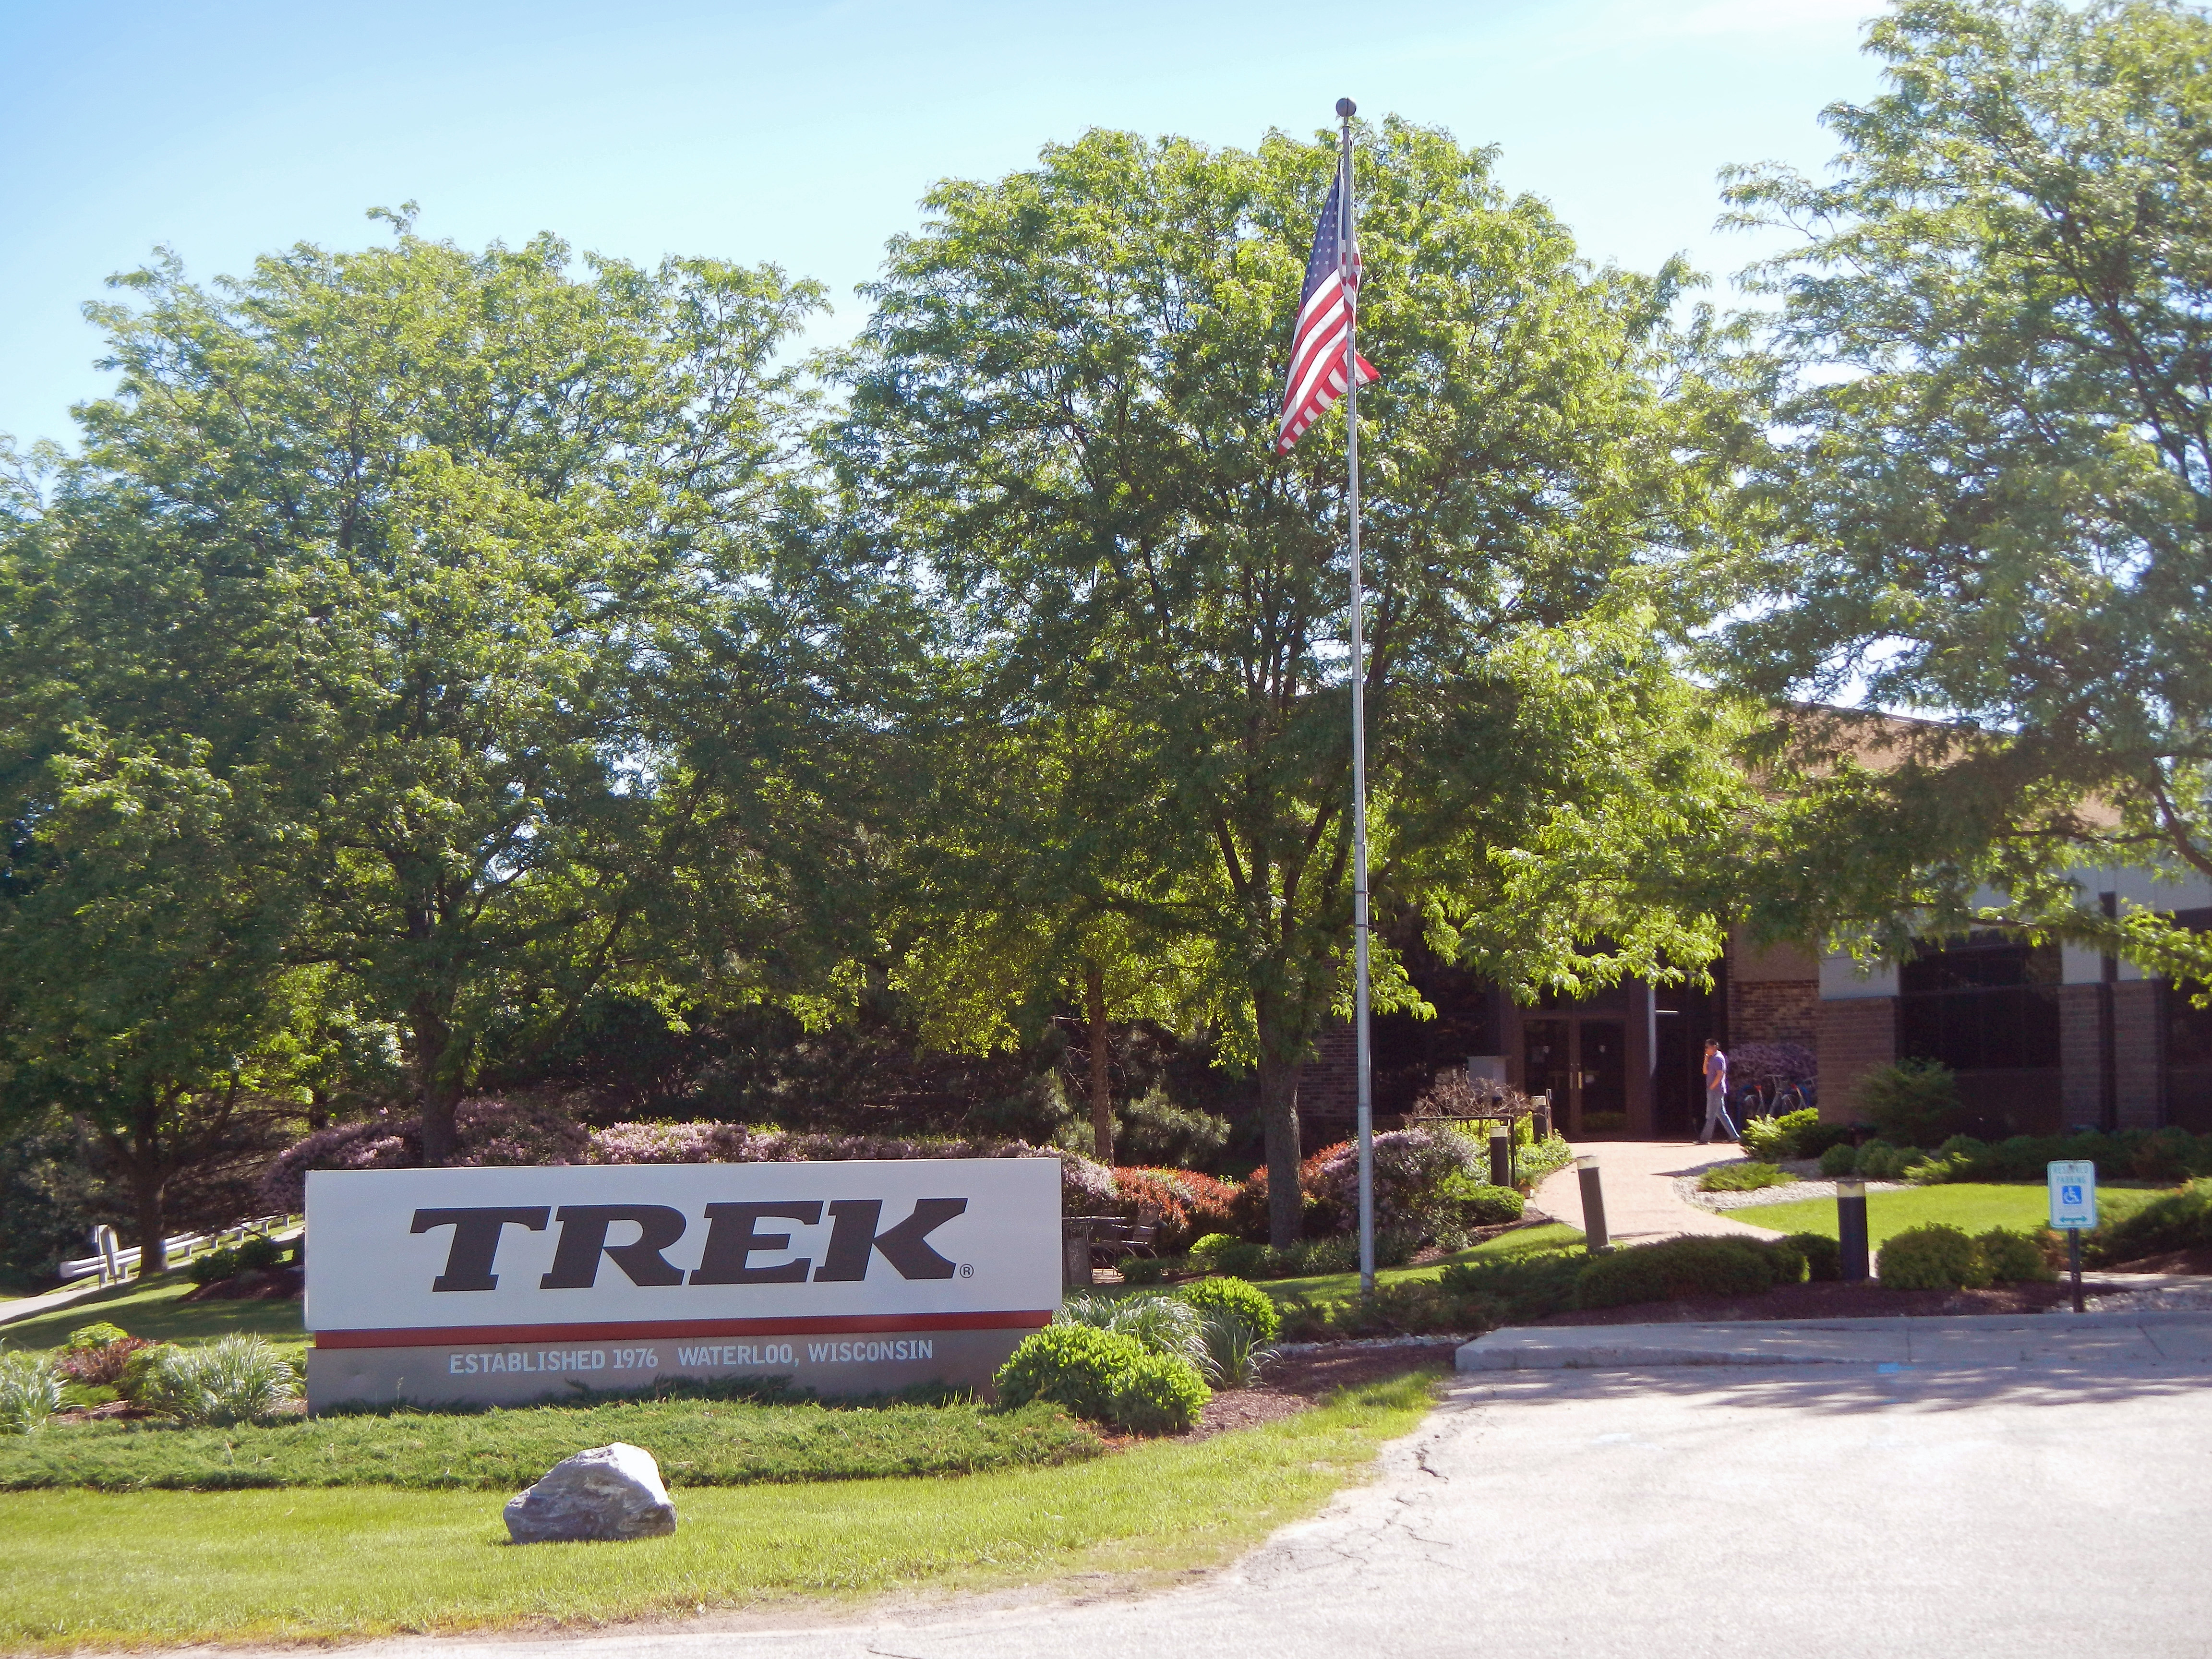 Entrance to Trek headquarters